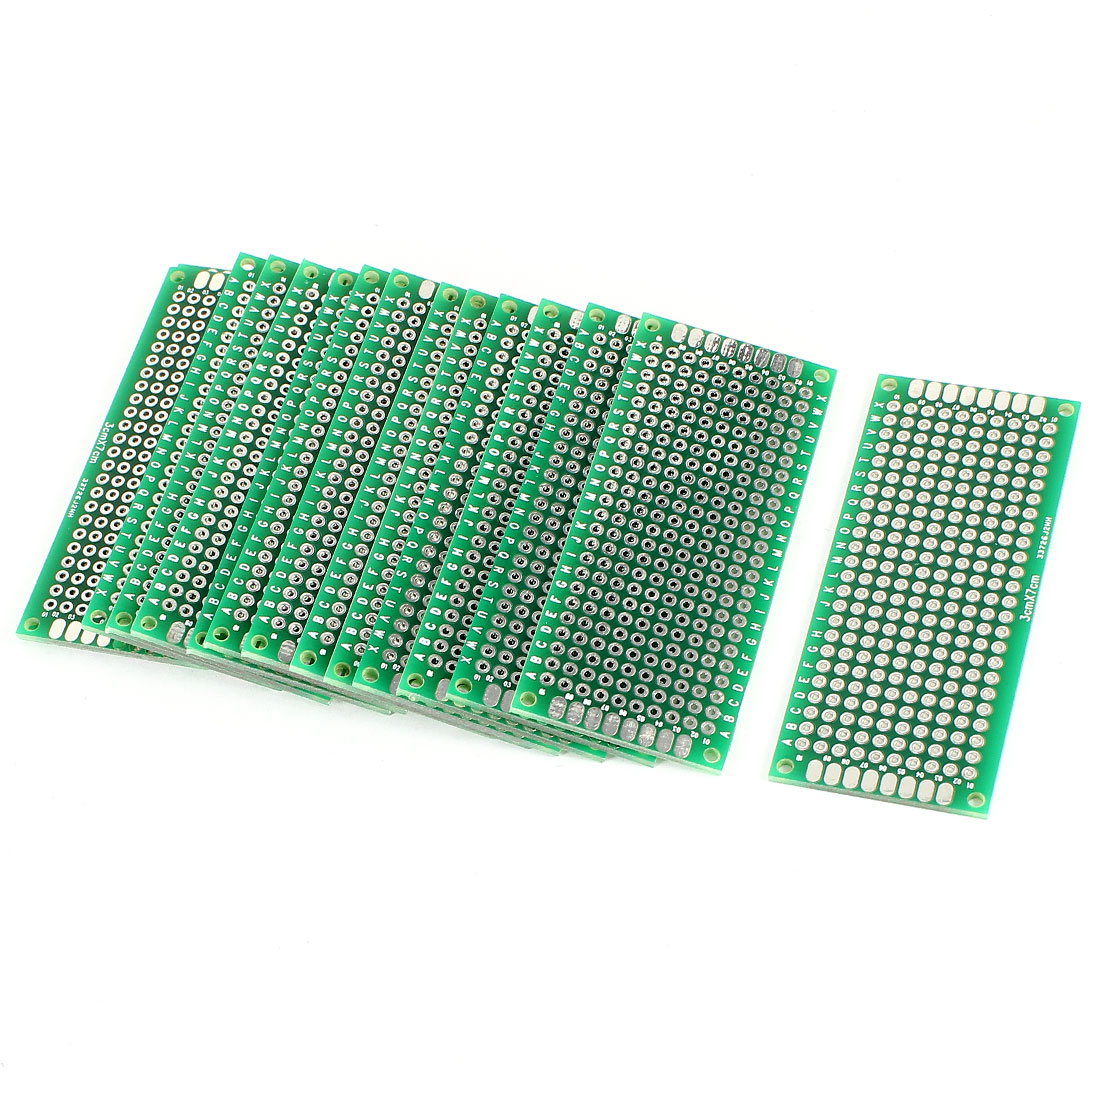 15 PCS 3cm x 7cm Two Sides Prototyping Experiment Matrix Tinned DIY Universal PCB Print Circuit Board